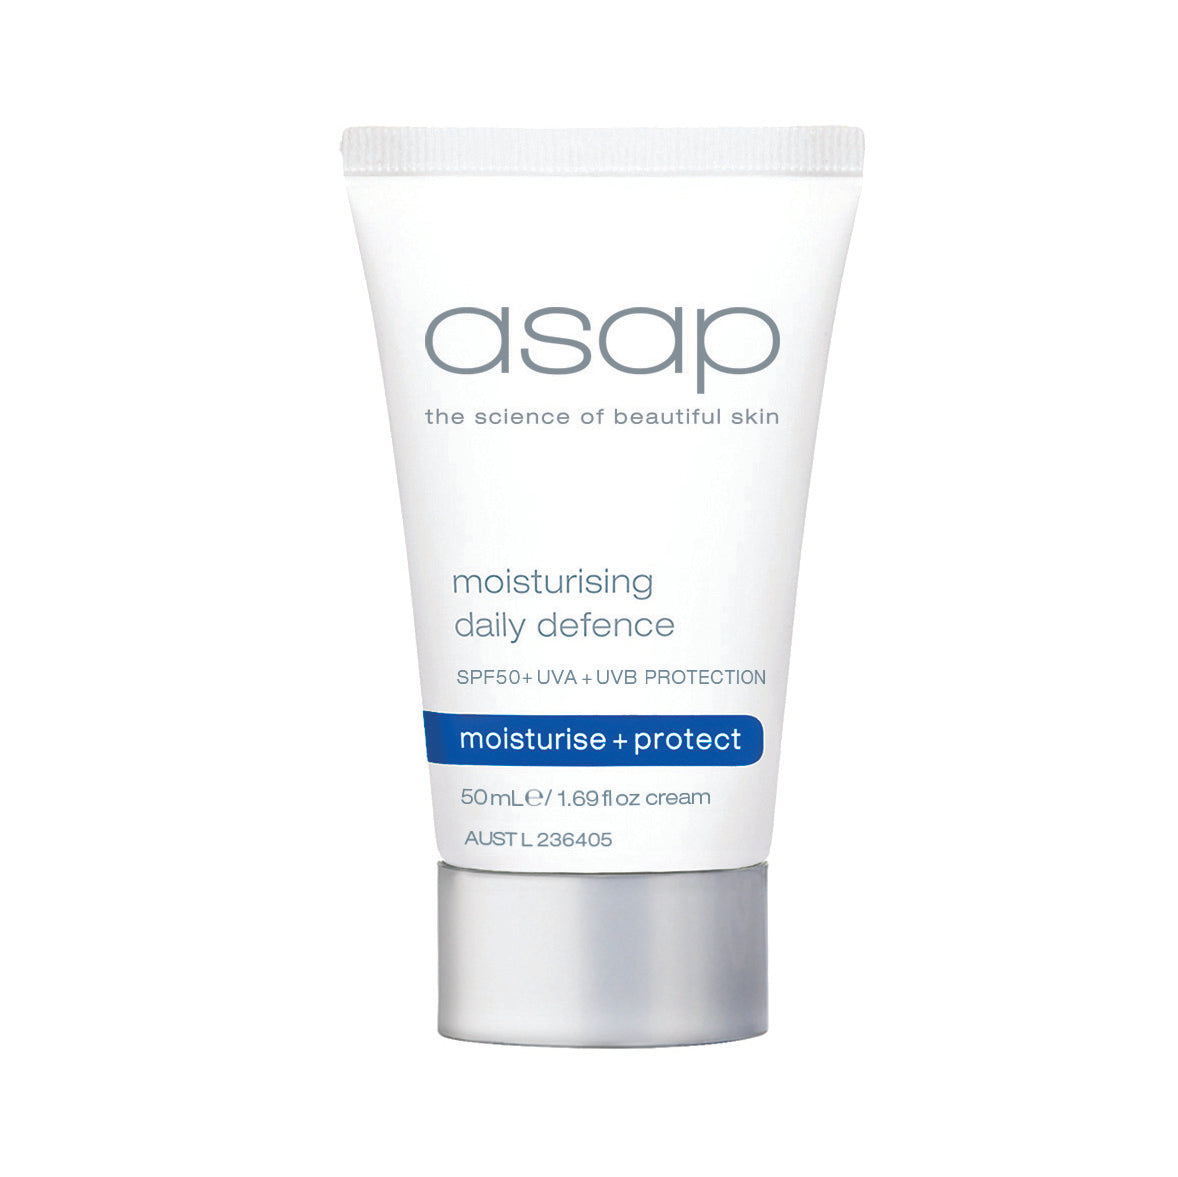 ASAP Moisturising Daily Defense SPF50+ Travel Size